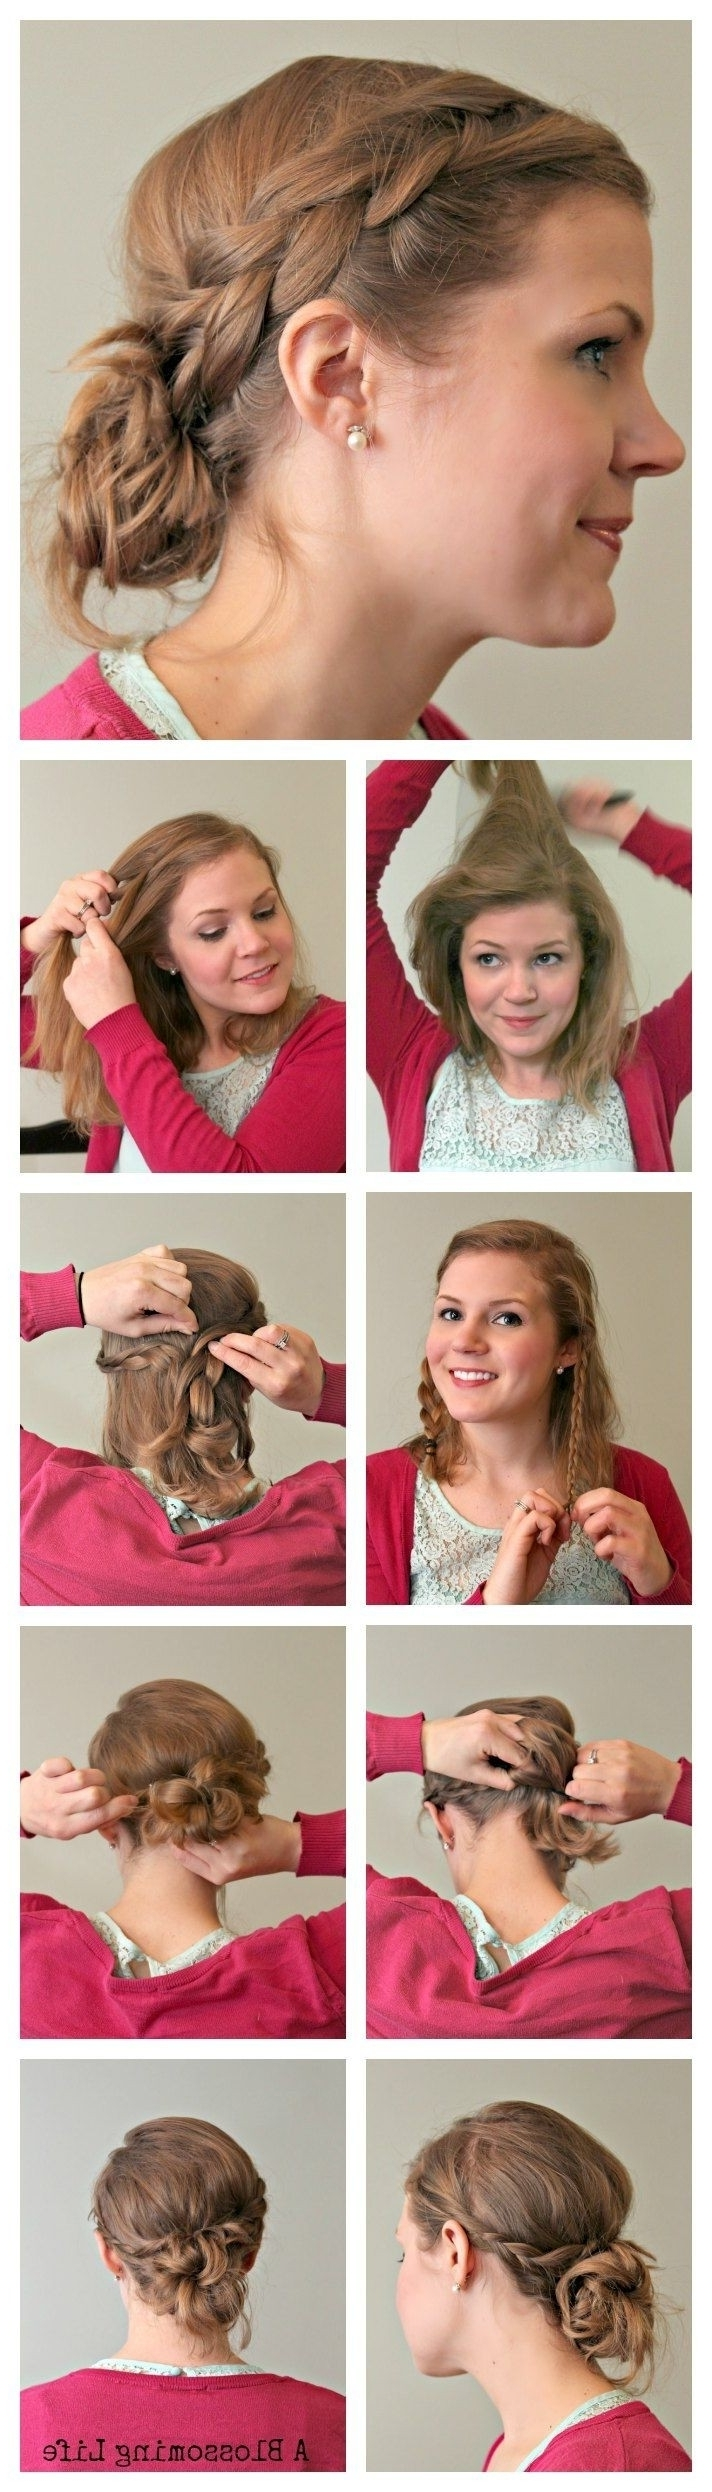 2017 Braid Hairstyles To Messy Bun For 10 Super Easy Updo Hairstyles Tutorials – Popular Haircuts (View 14 of 15)